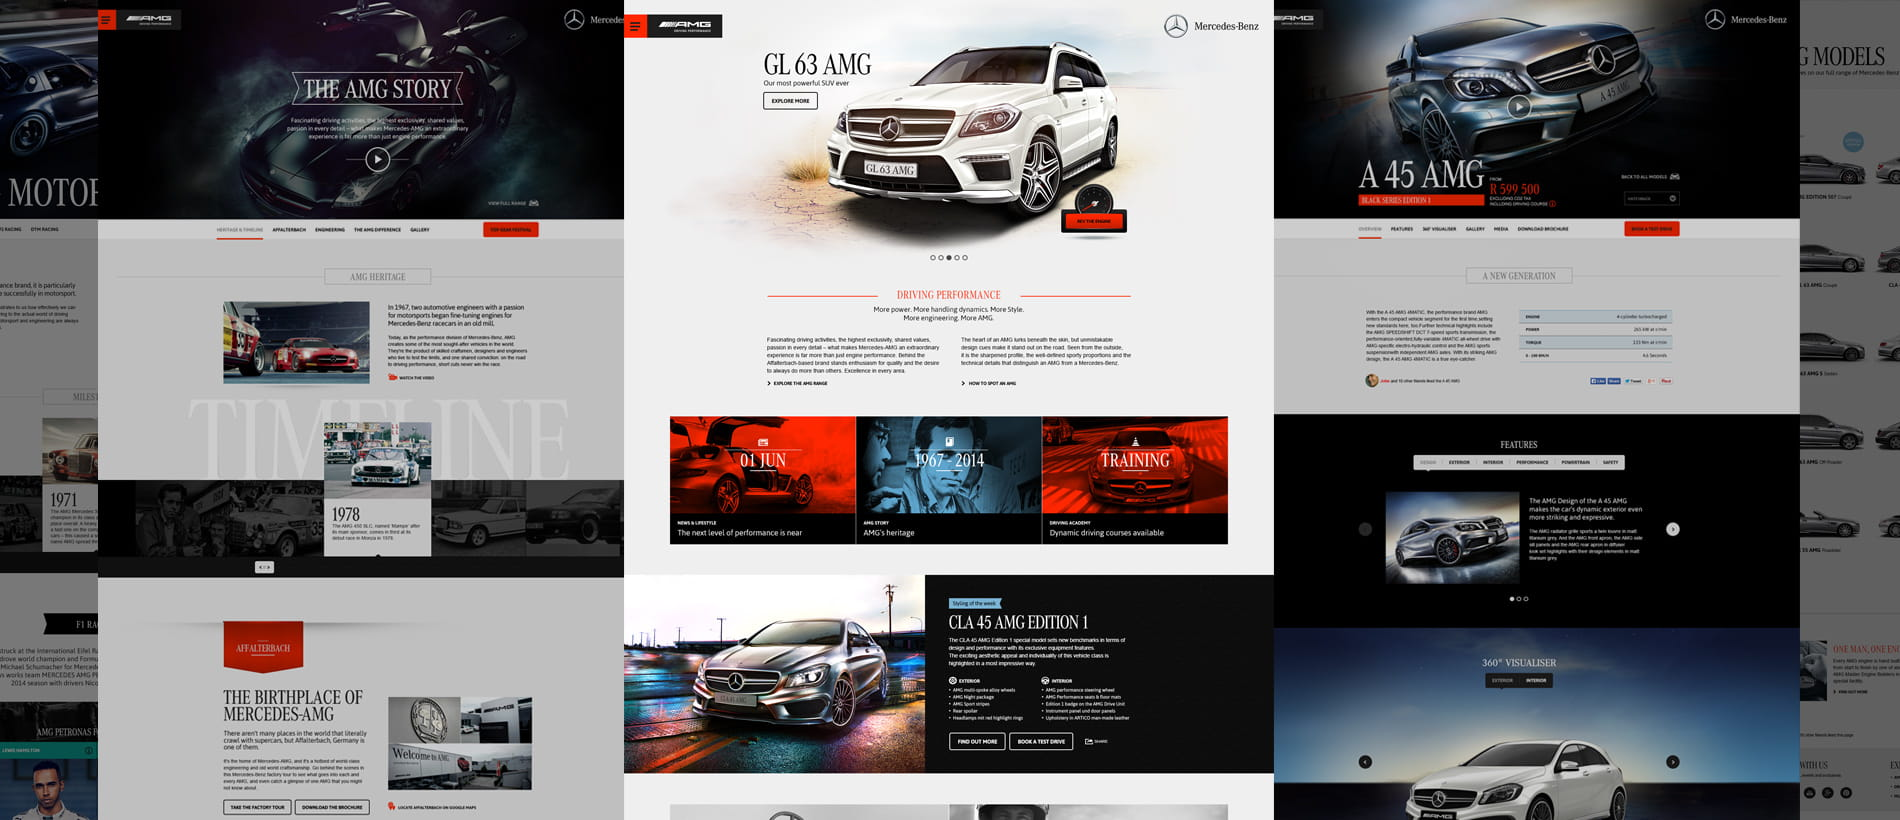 AMG Website Screens